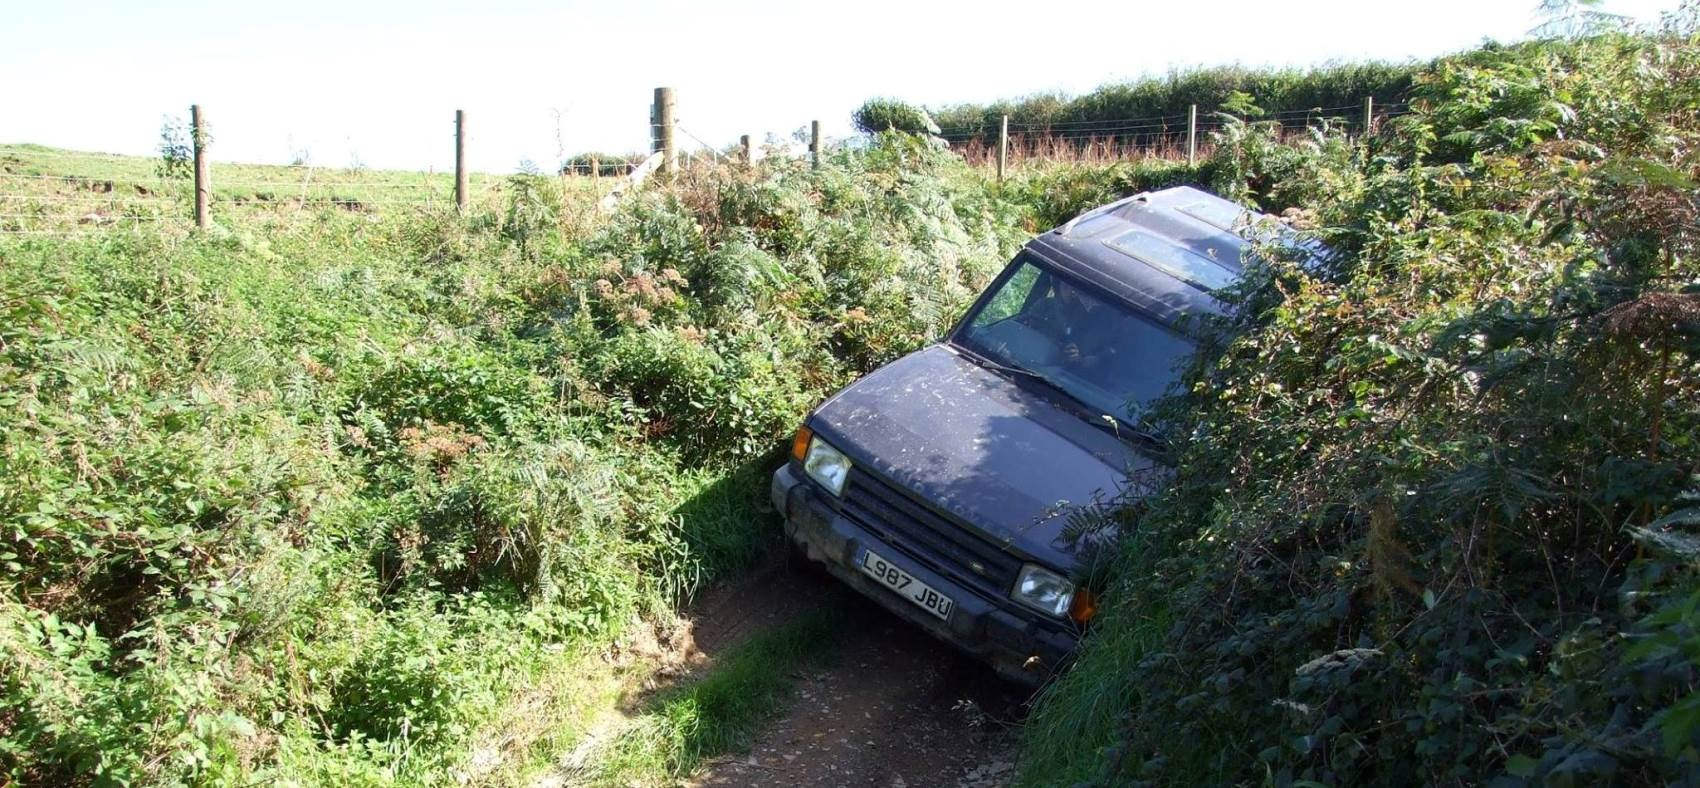 45 Minute 4x4 Driving Experience in Devon - With Passenger-1